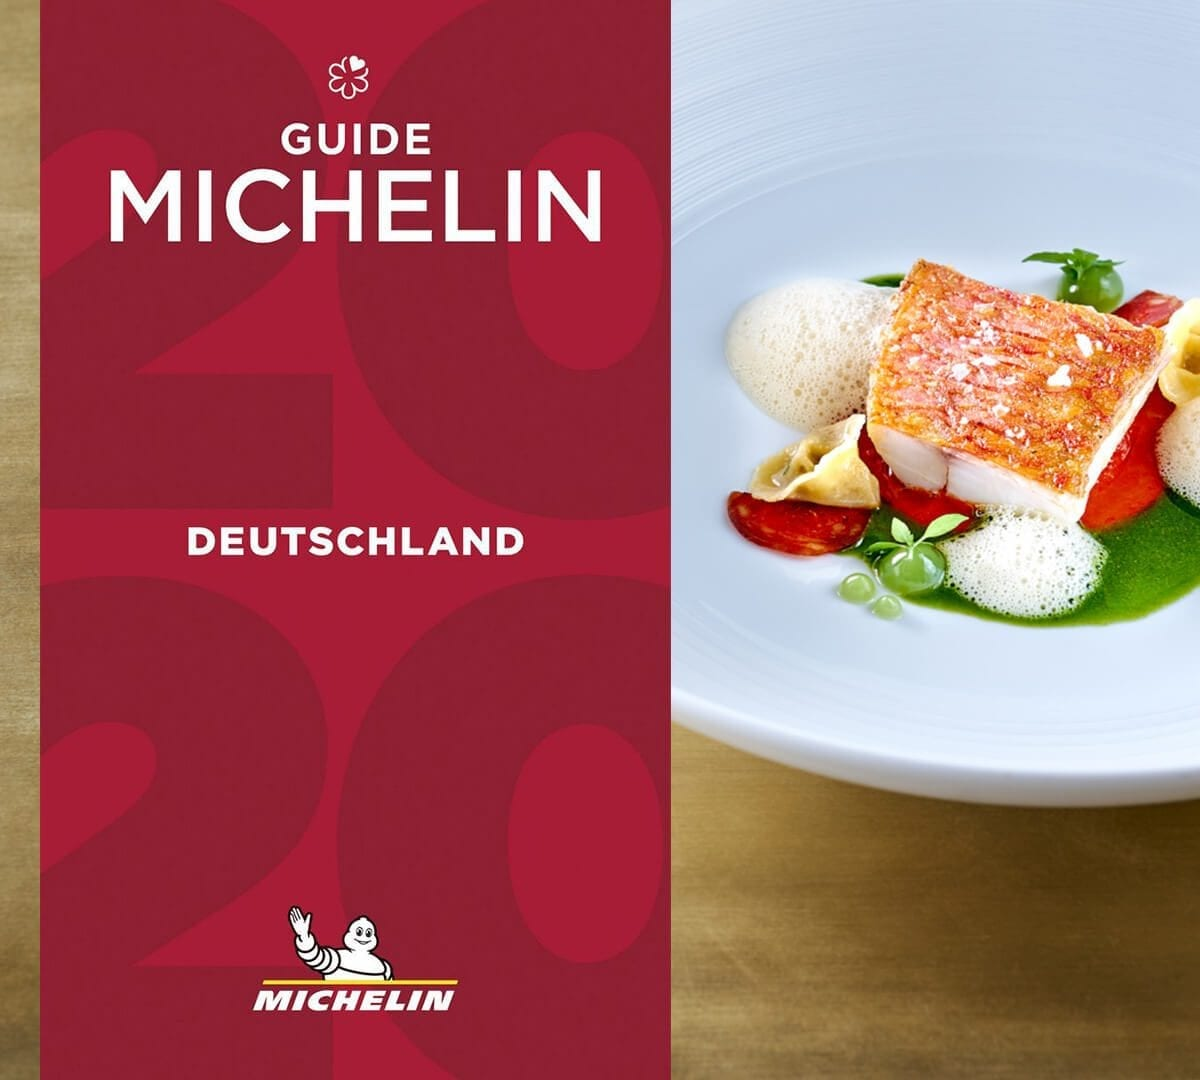 Guide Michelin Deutschland 2020